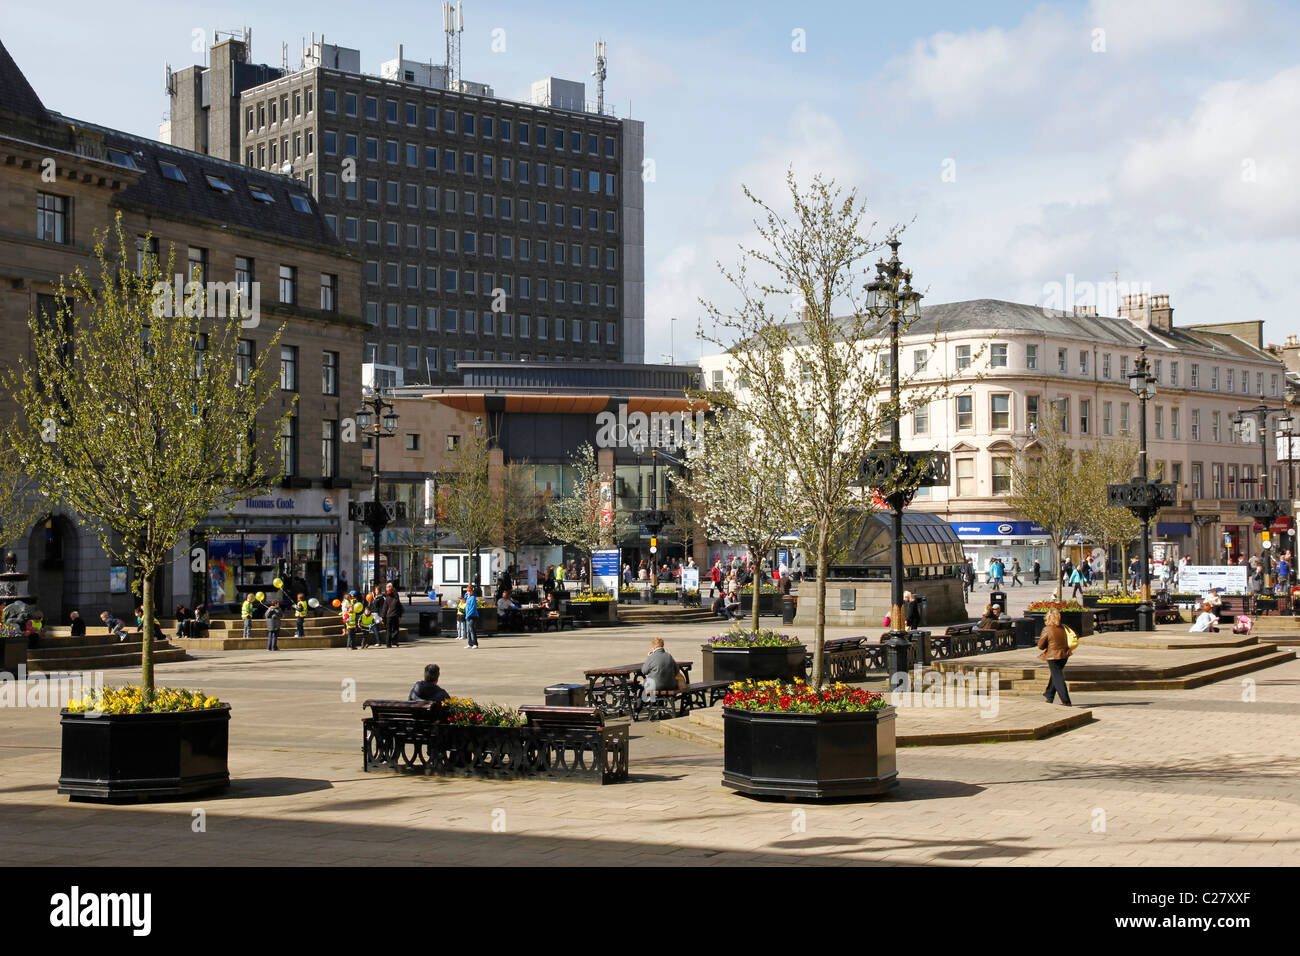 City Square, Dundee - Stock Image